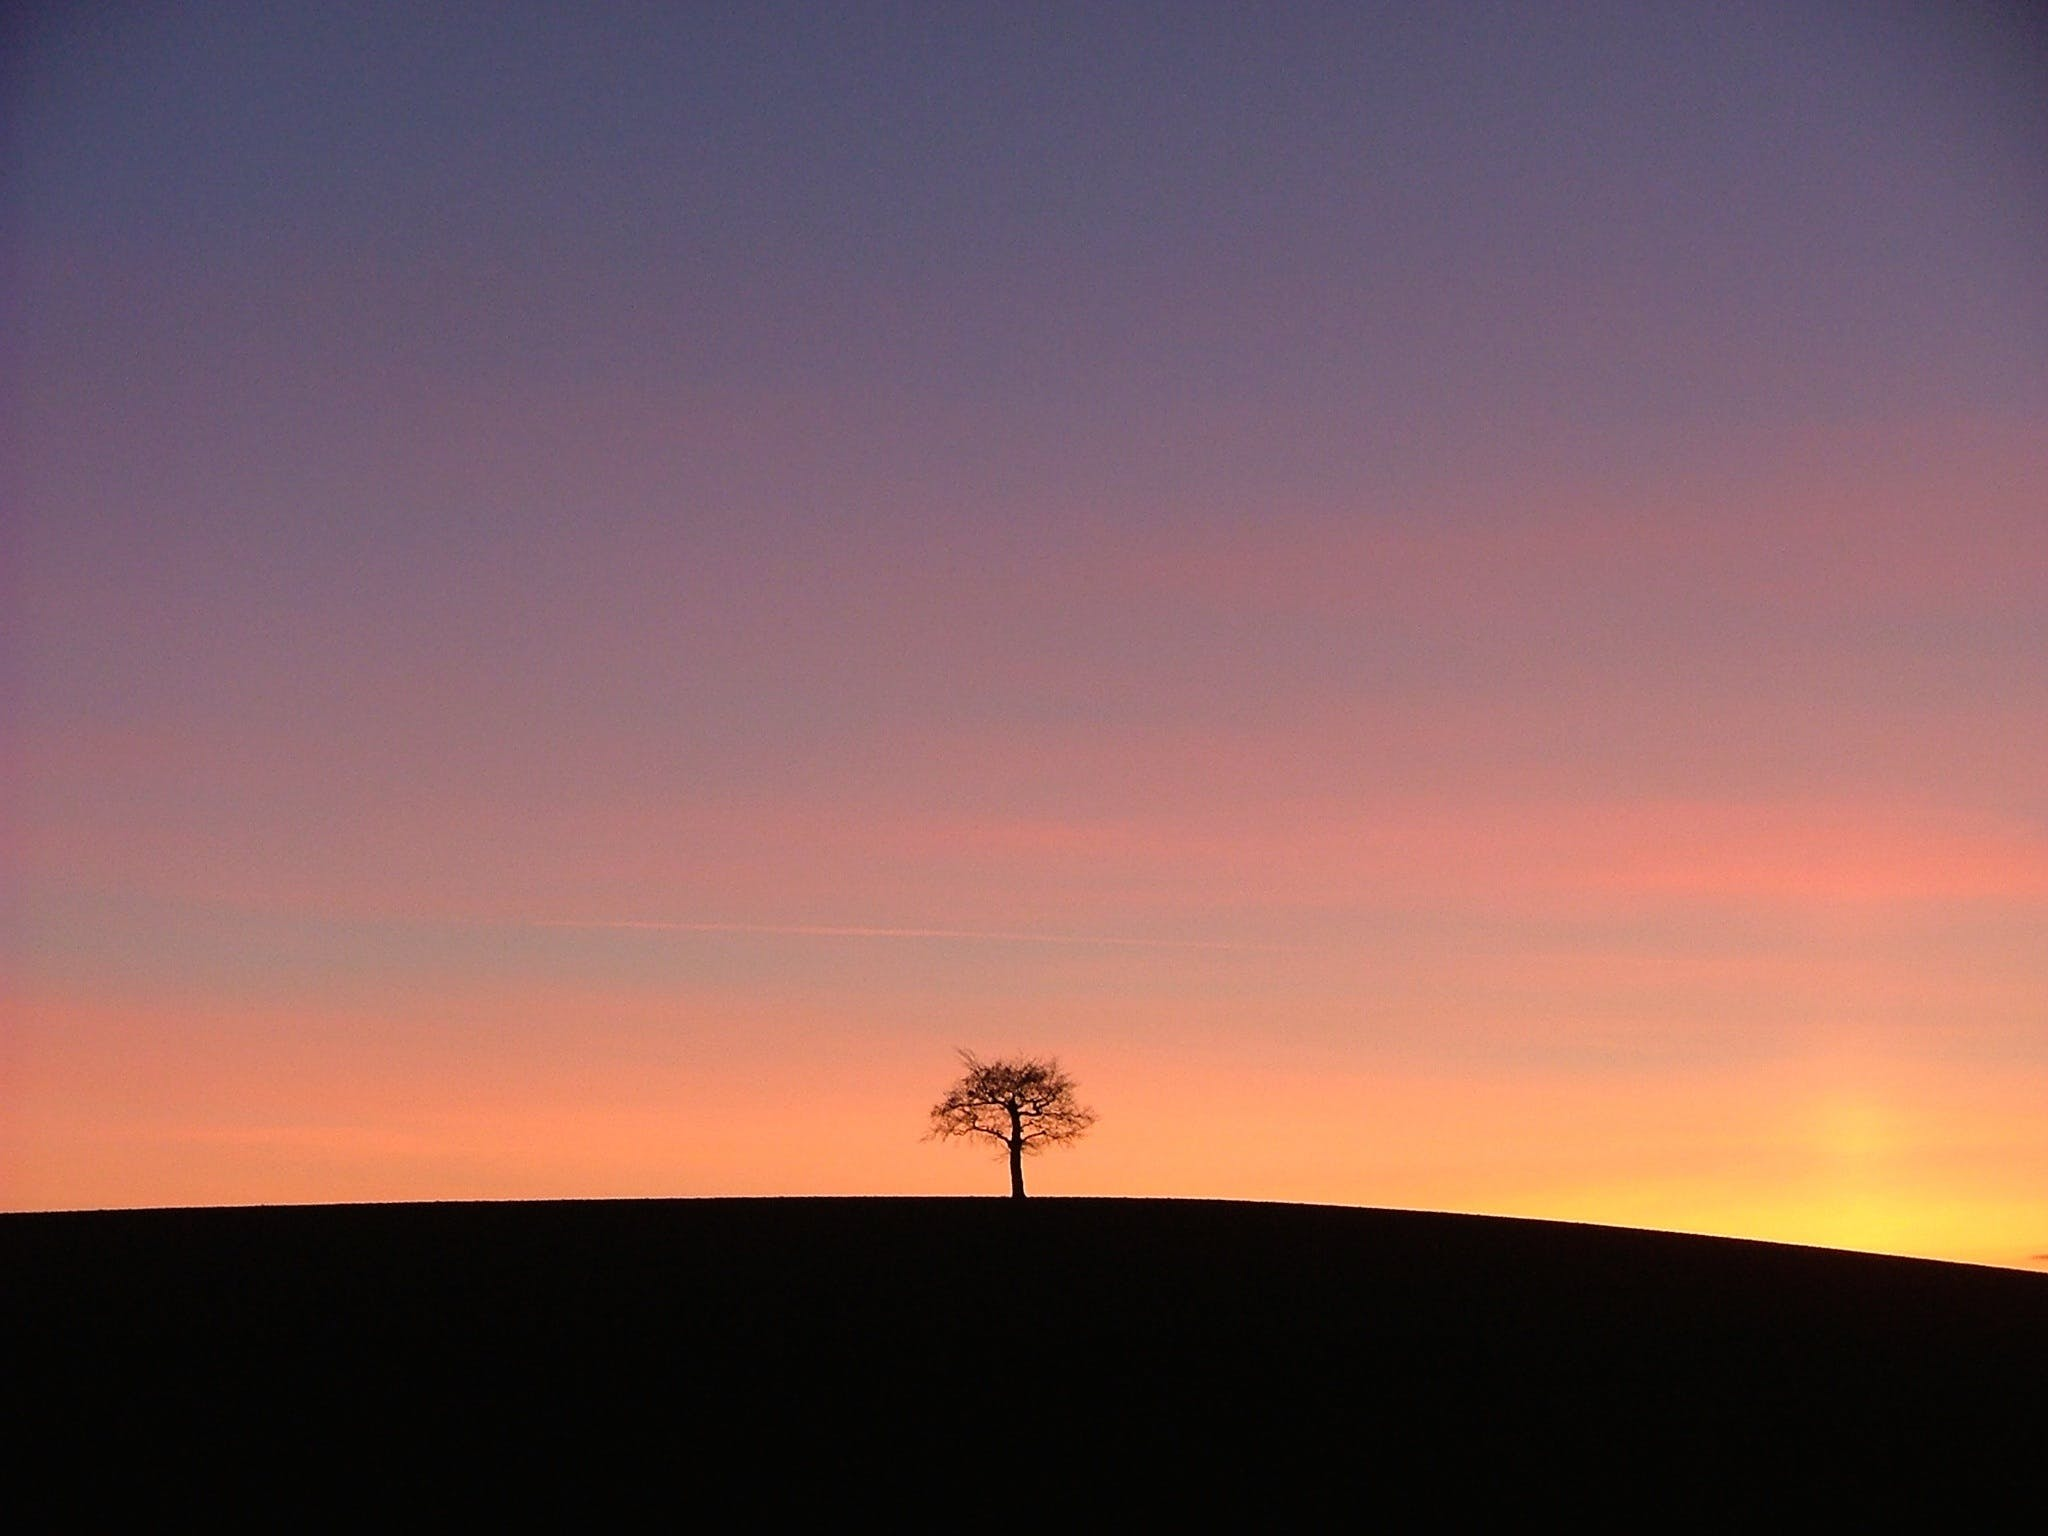 Silhouette of a Tree